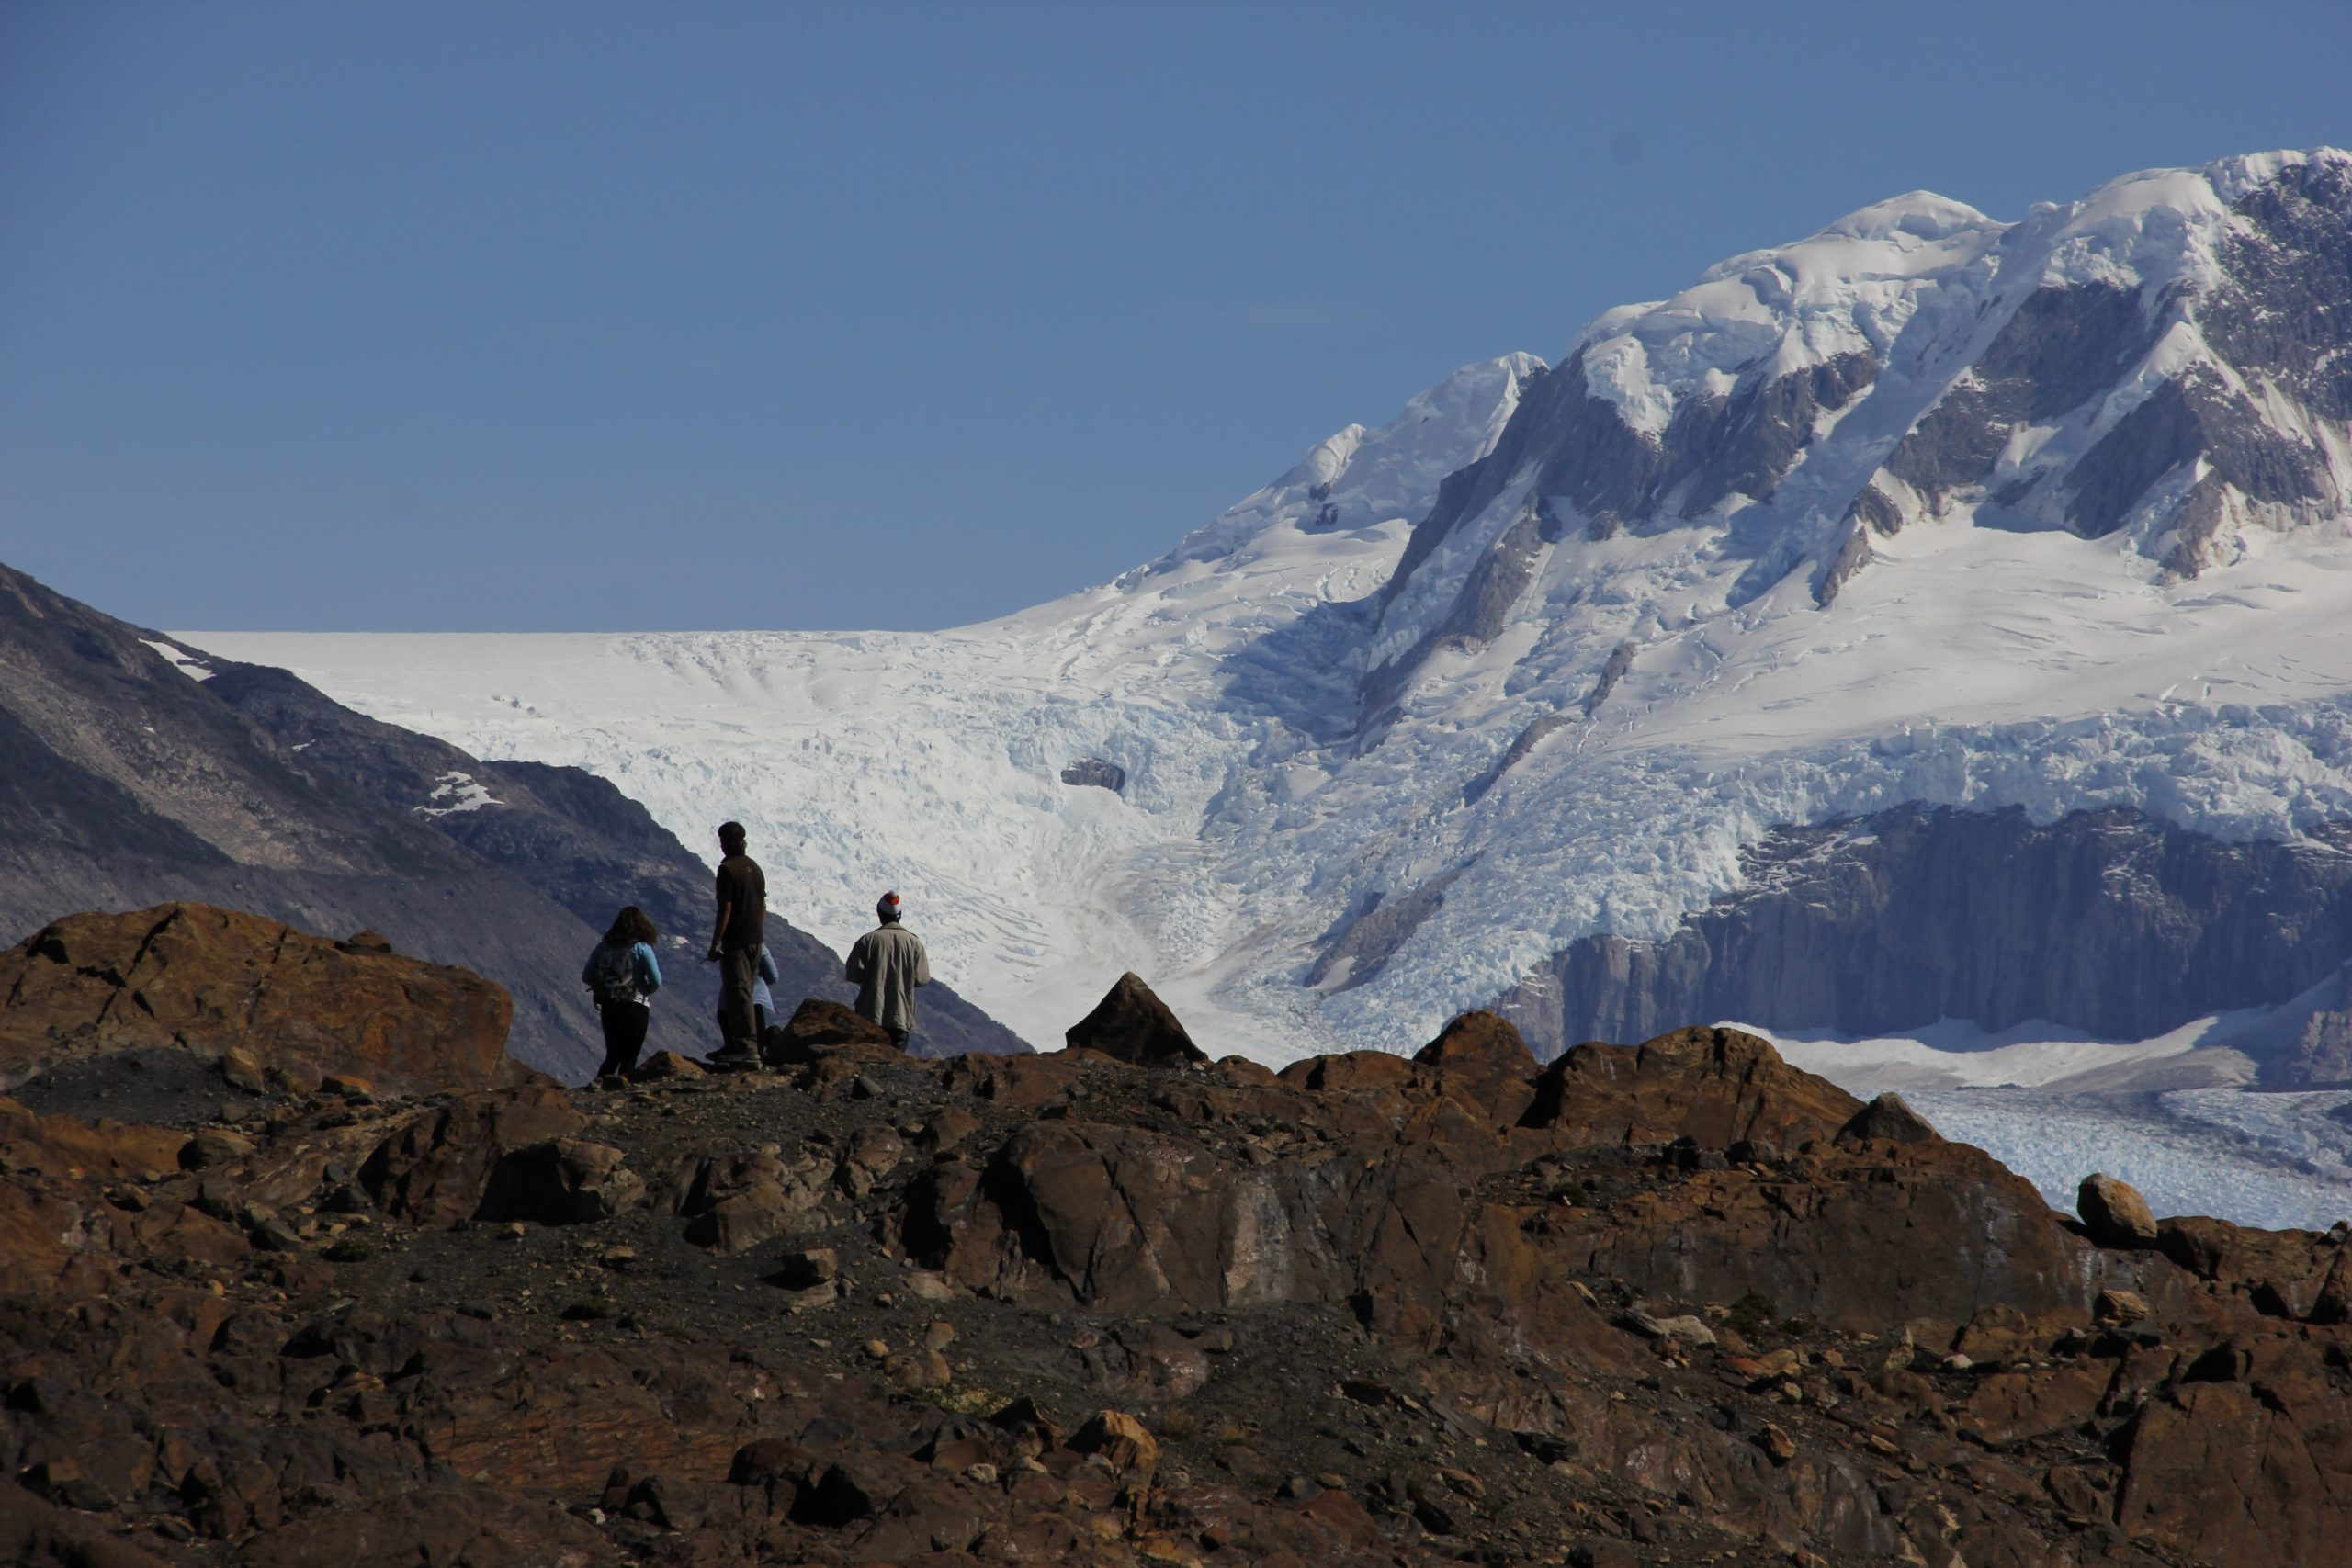 group of hikers treking through mountains with glacier in background